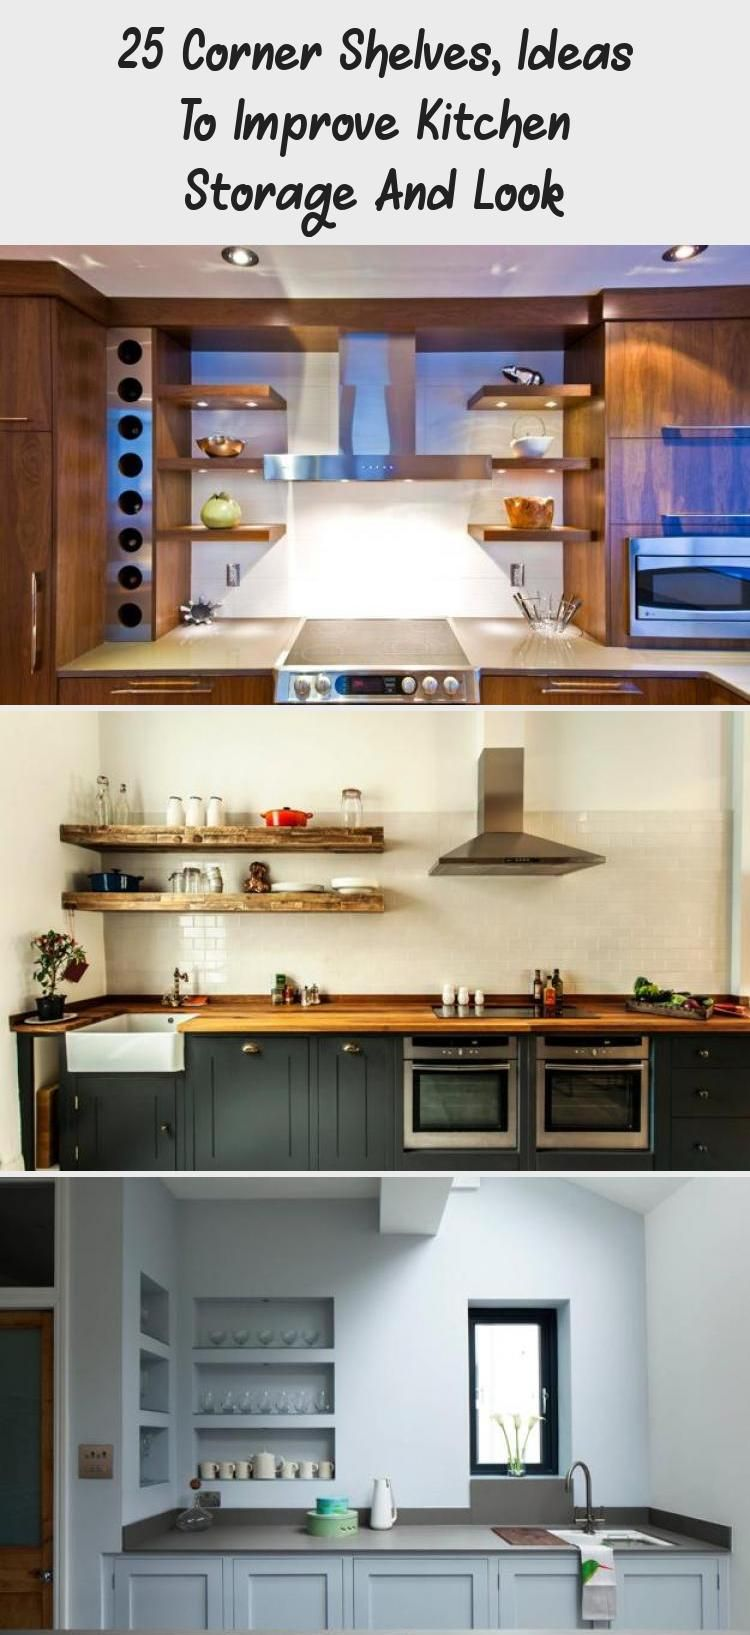 25 Corner Shelves Ideas To Improve Kitchen Storage And Look In 2020 With Images Diy Kitchen Shelves